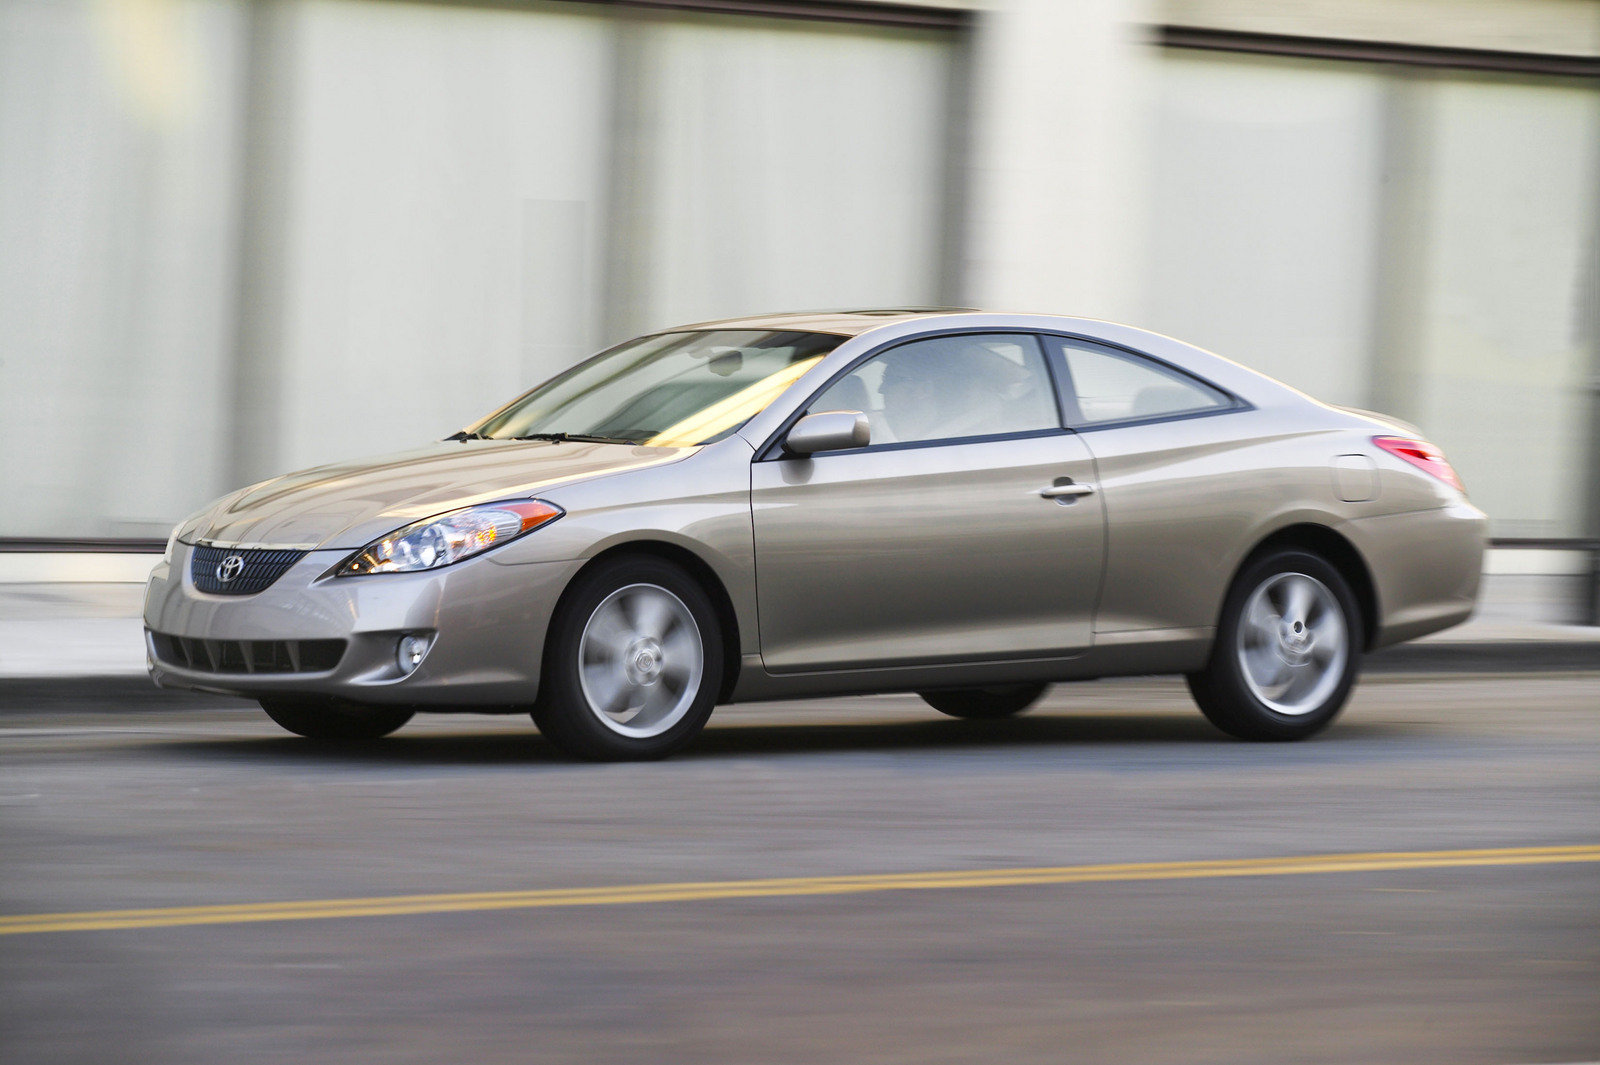 2006 toyota camry solara picture 94232 car review top speed. Black Bedroom Furniture Sets. Home Design Ideas